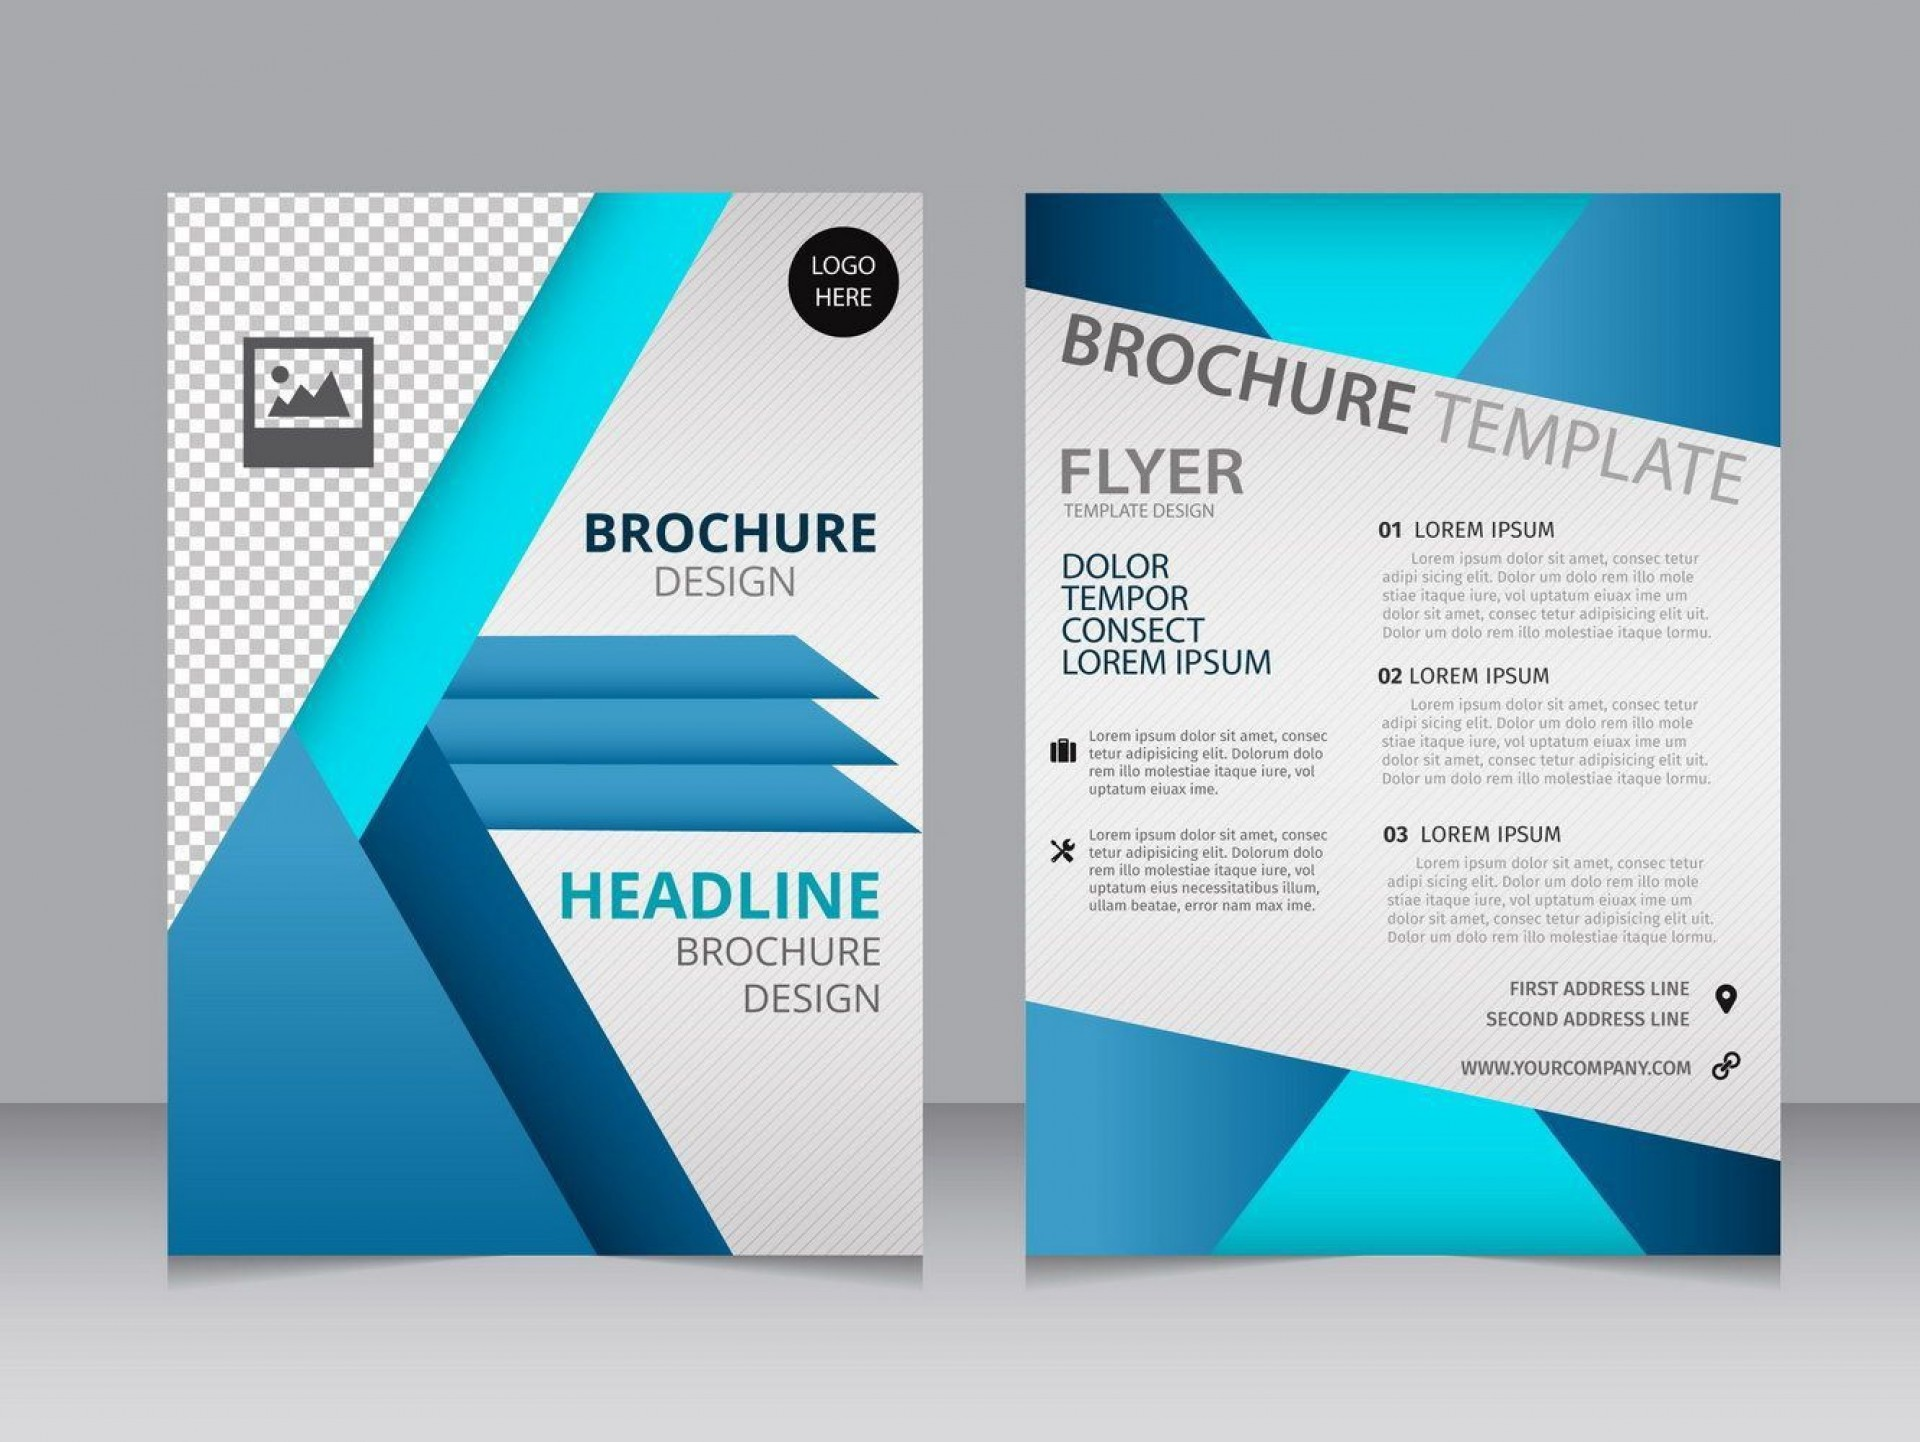 001 Shocking Free Newsletter Template For Word 2010 High Resolution 1920